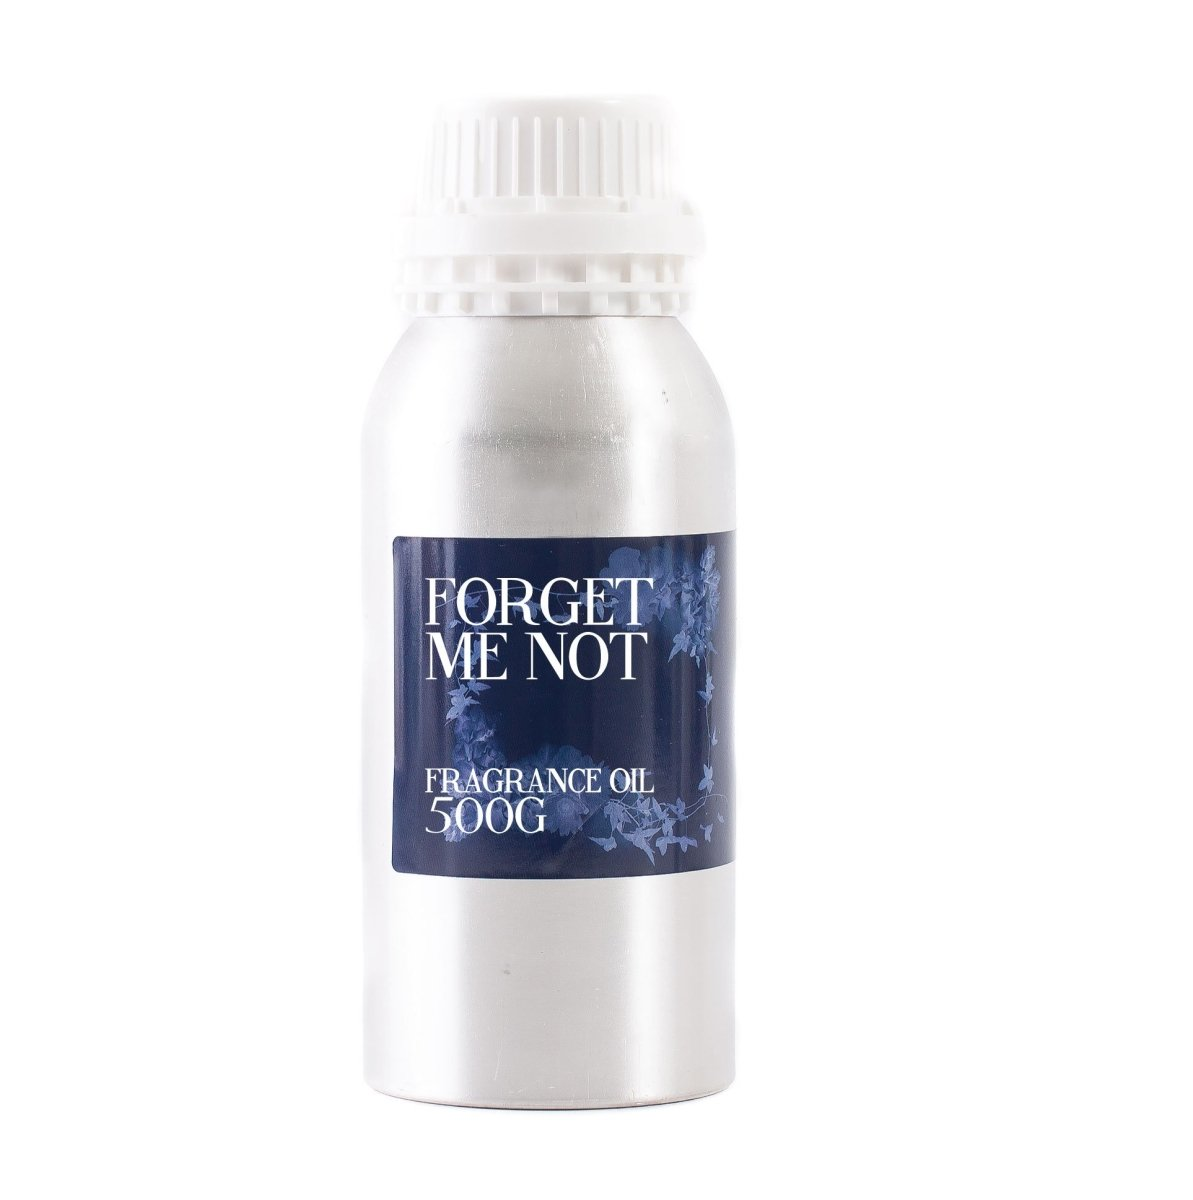 Forget Me Not Fragrance Oil - Mystic Moments UK